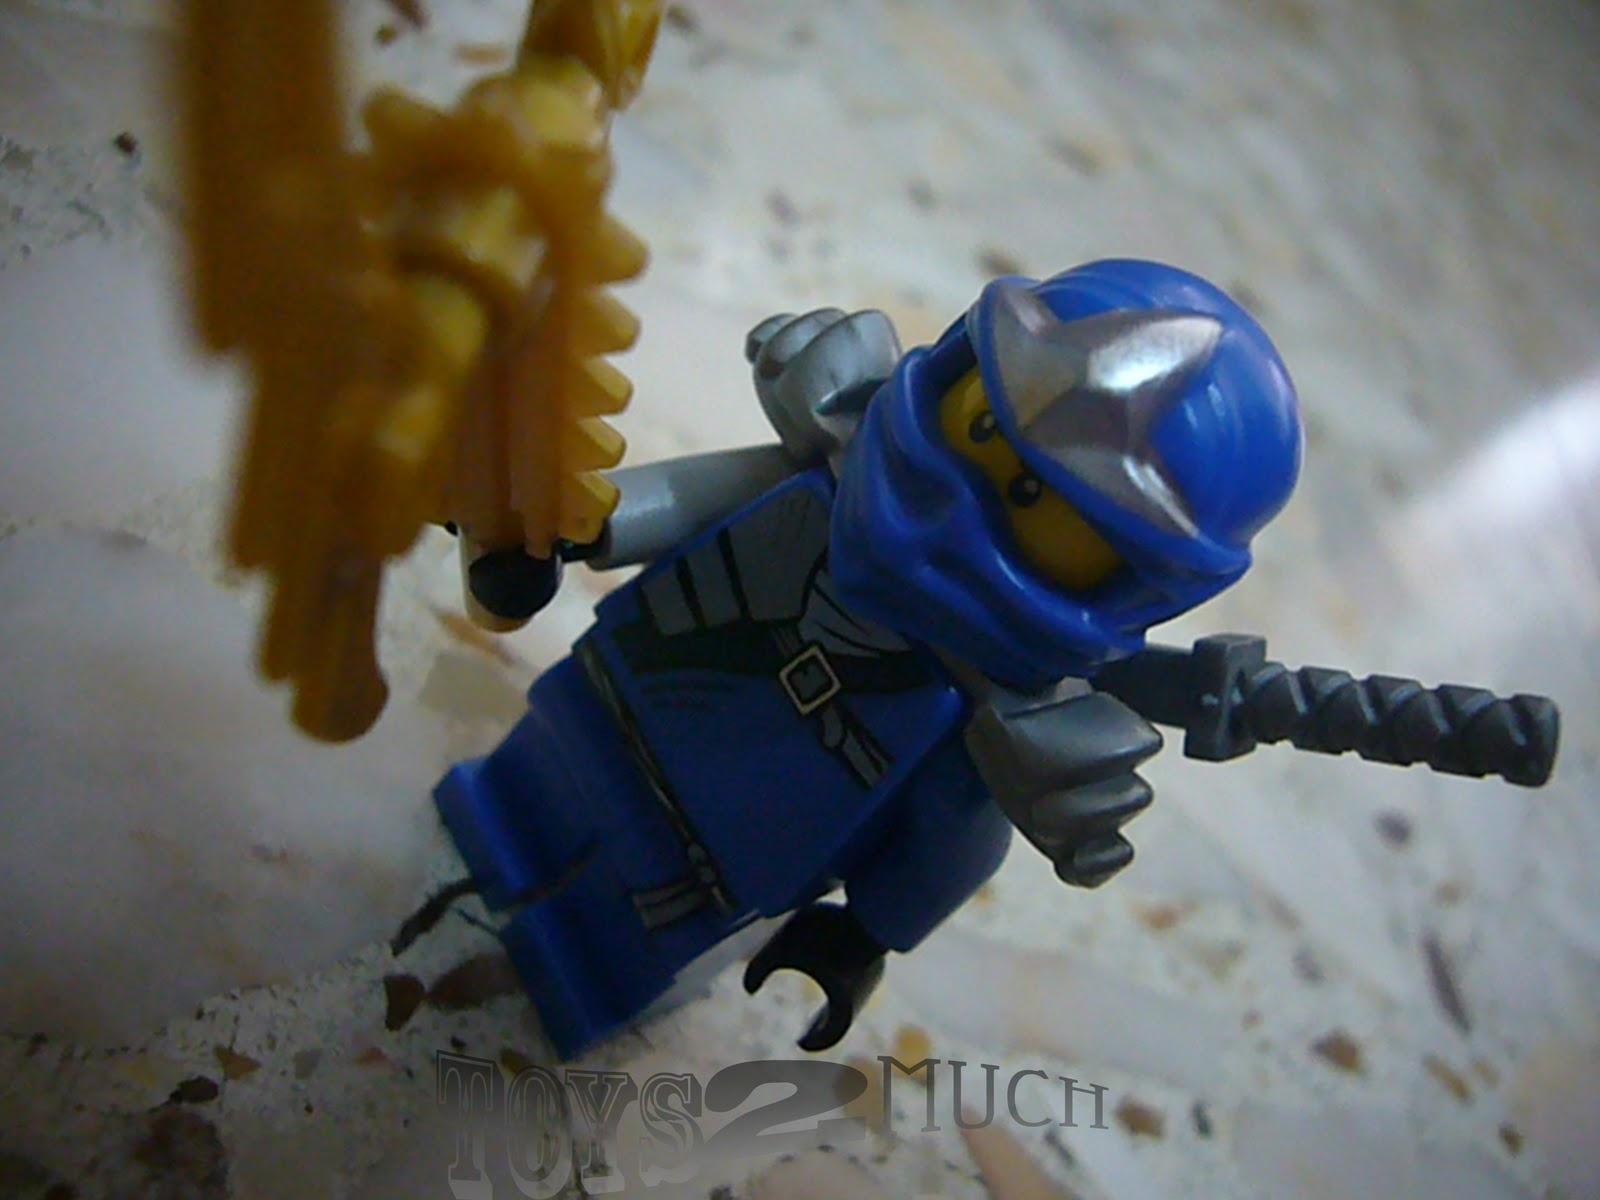 Toys2much Lego Ninjago Booster Pack Jay Zx 9553